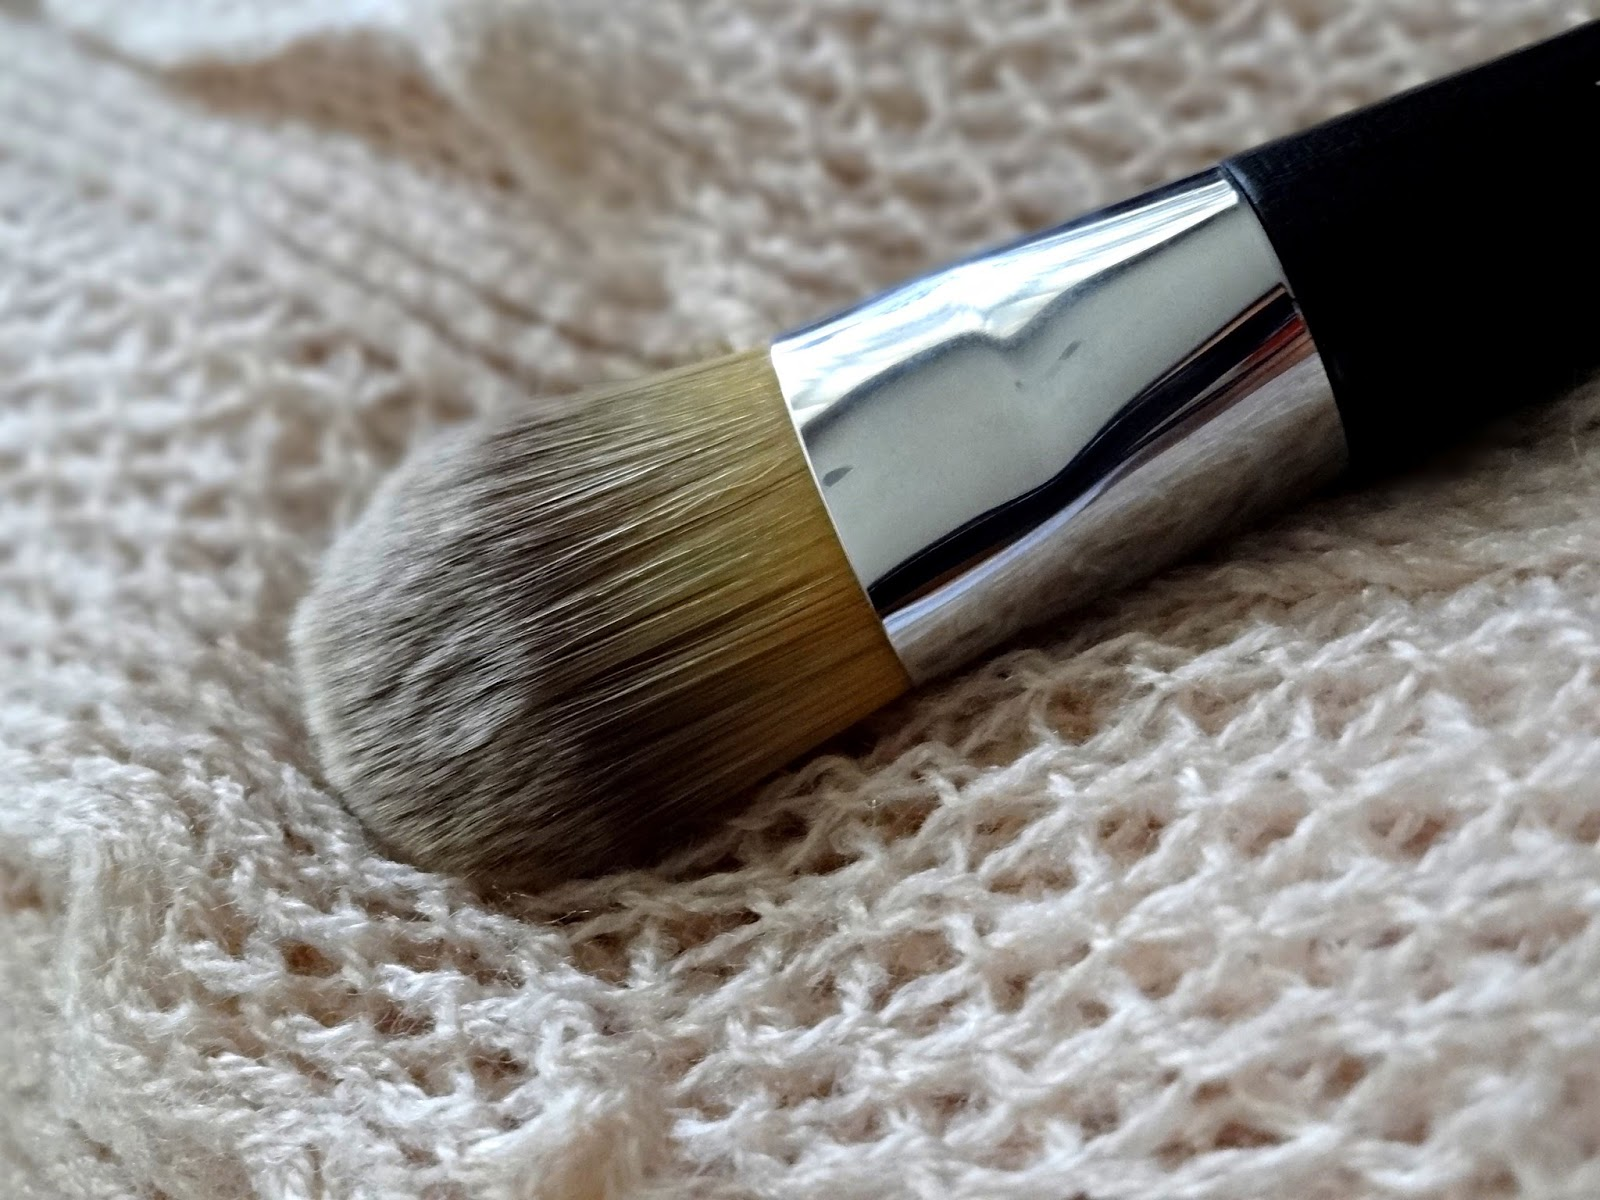 Dior Backstage Foundation Light Coverage Fluid Brush Review, Photos